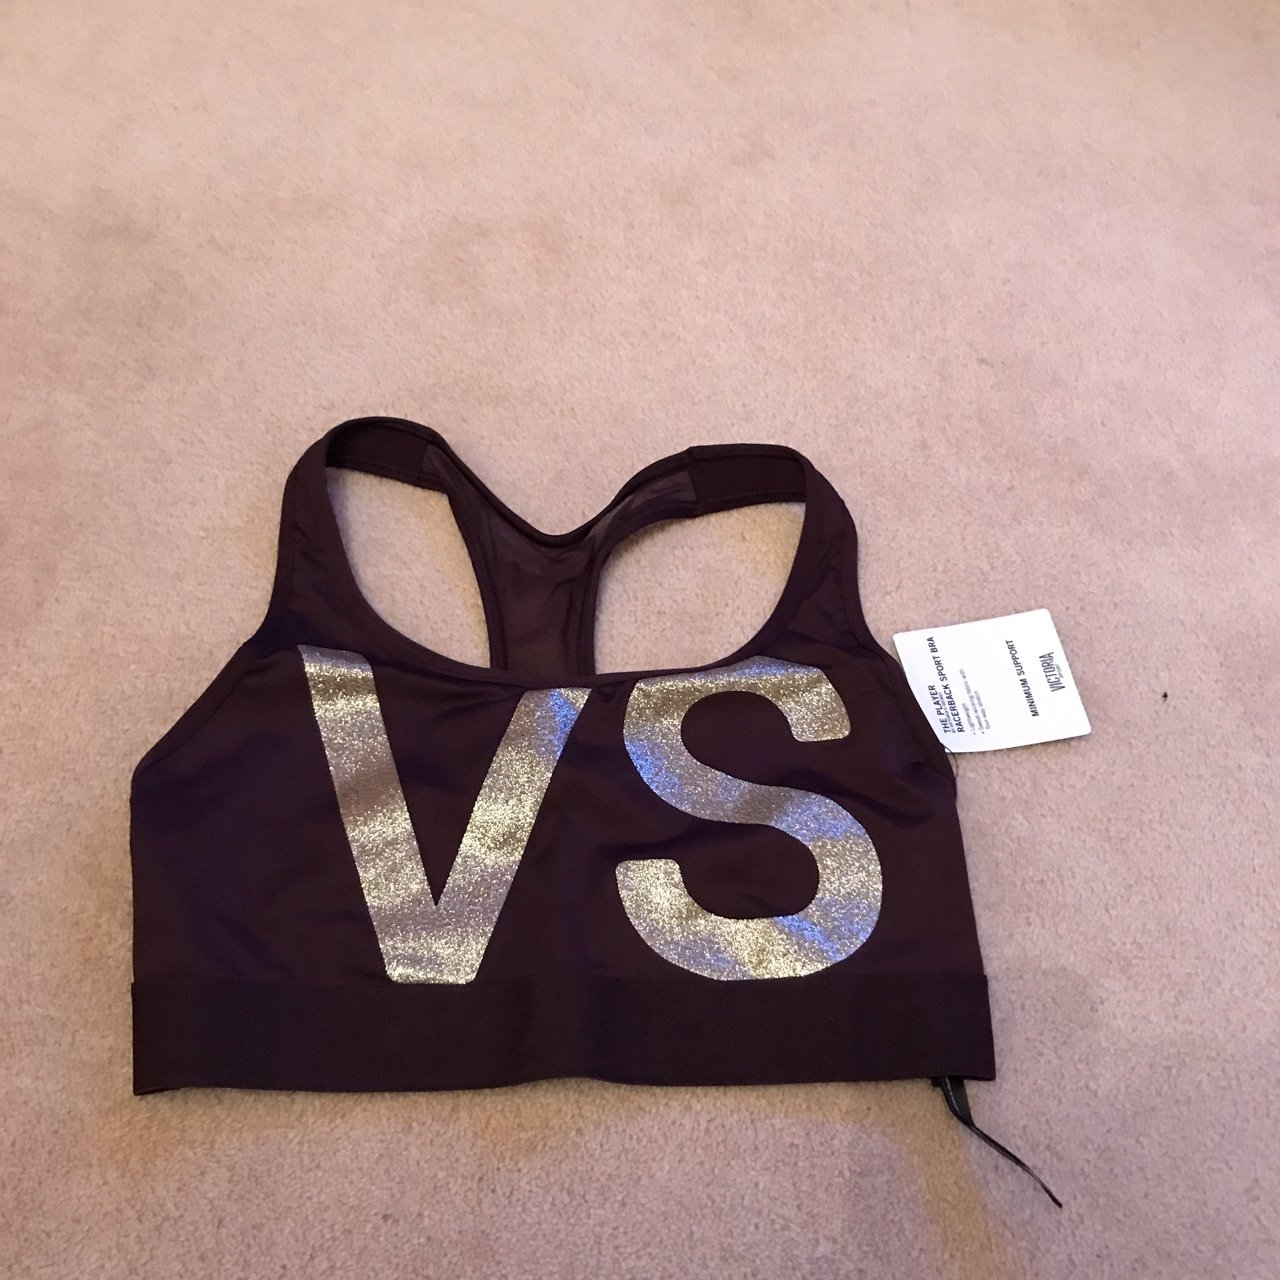 066020acf7302 Brand new with tags Victoria s Secret sports bra size dark   - Depop